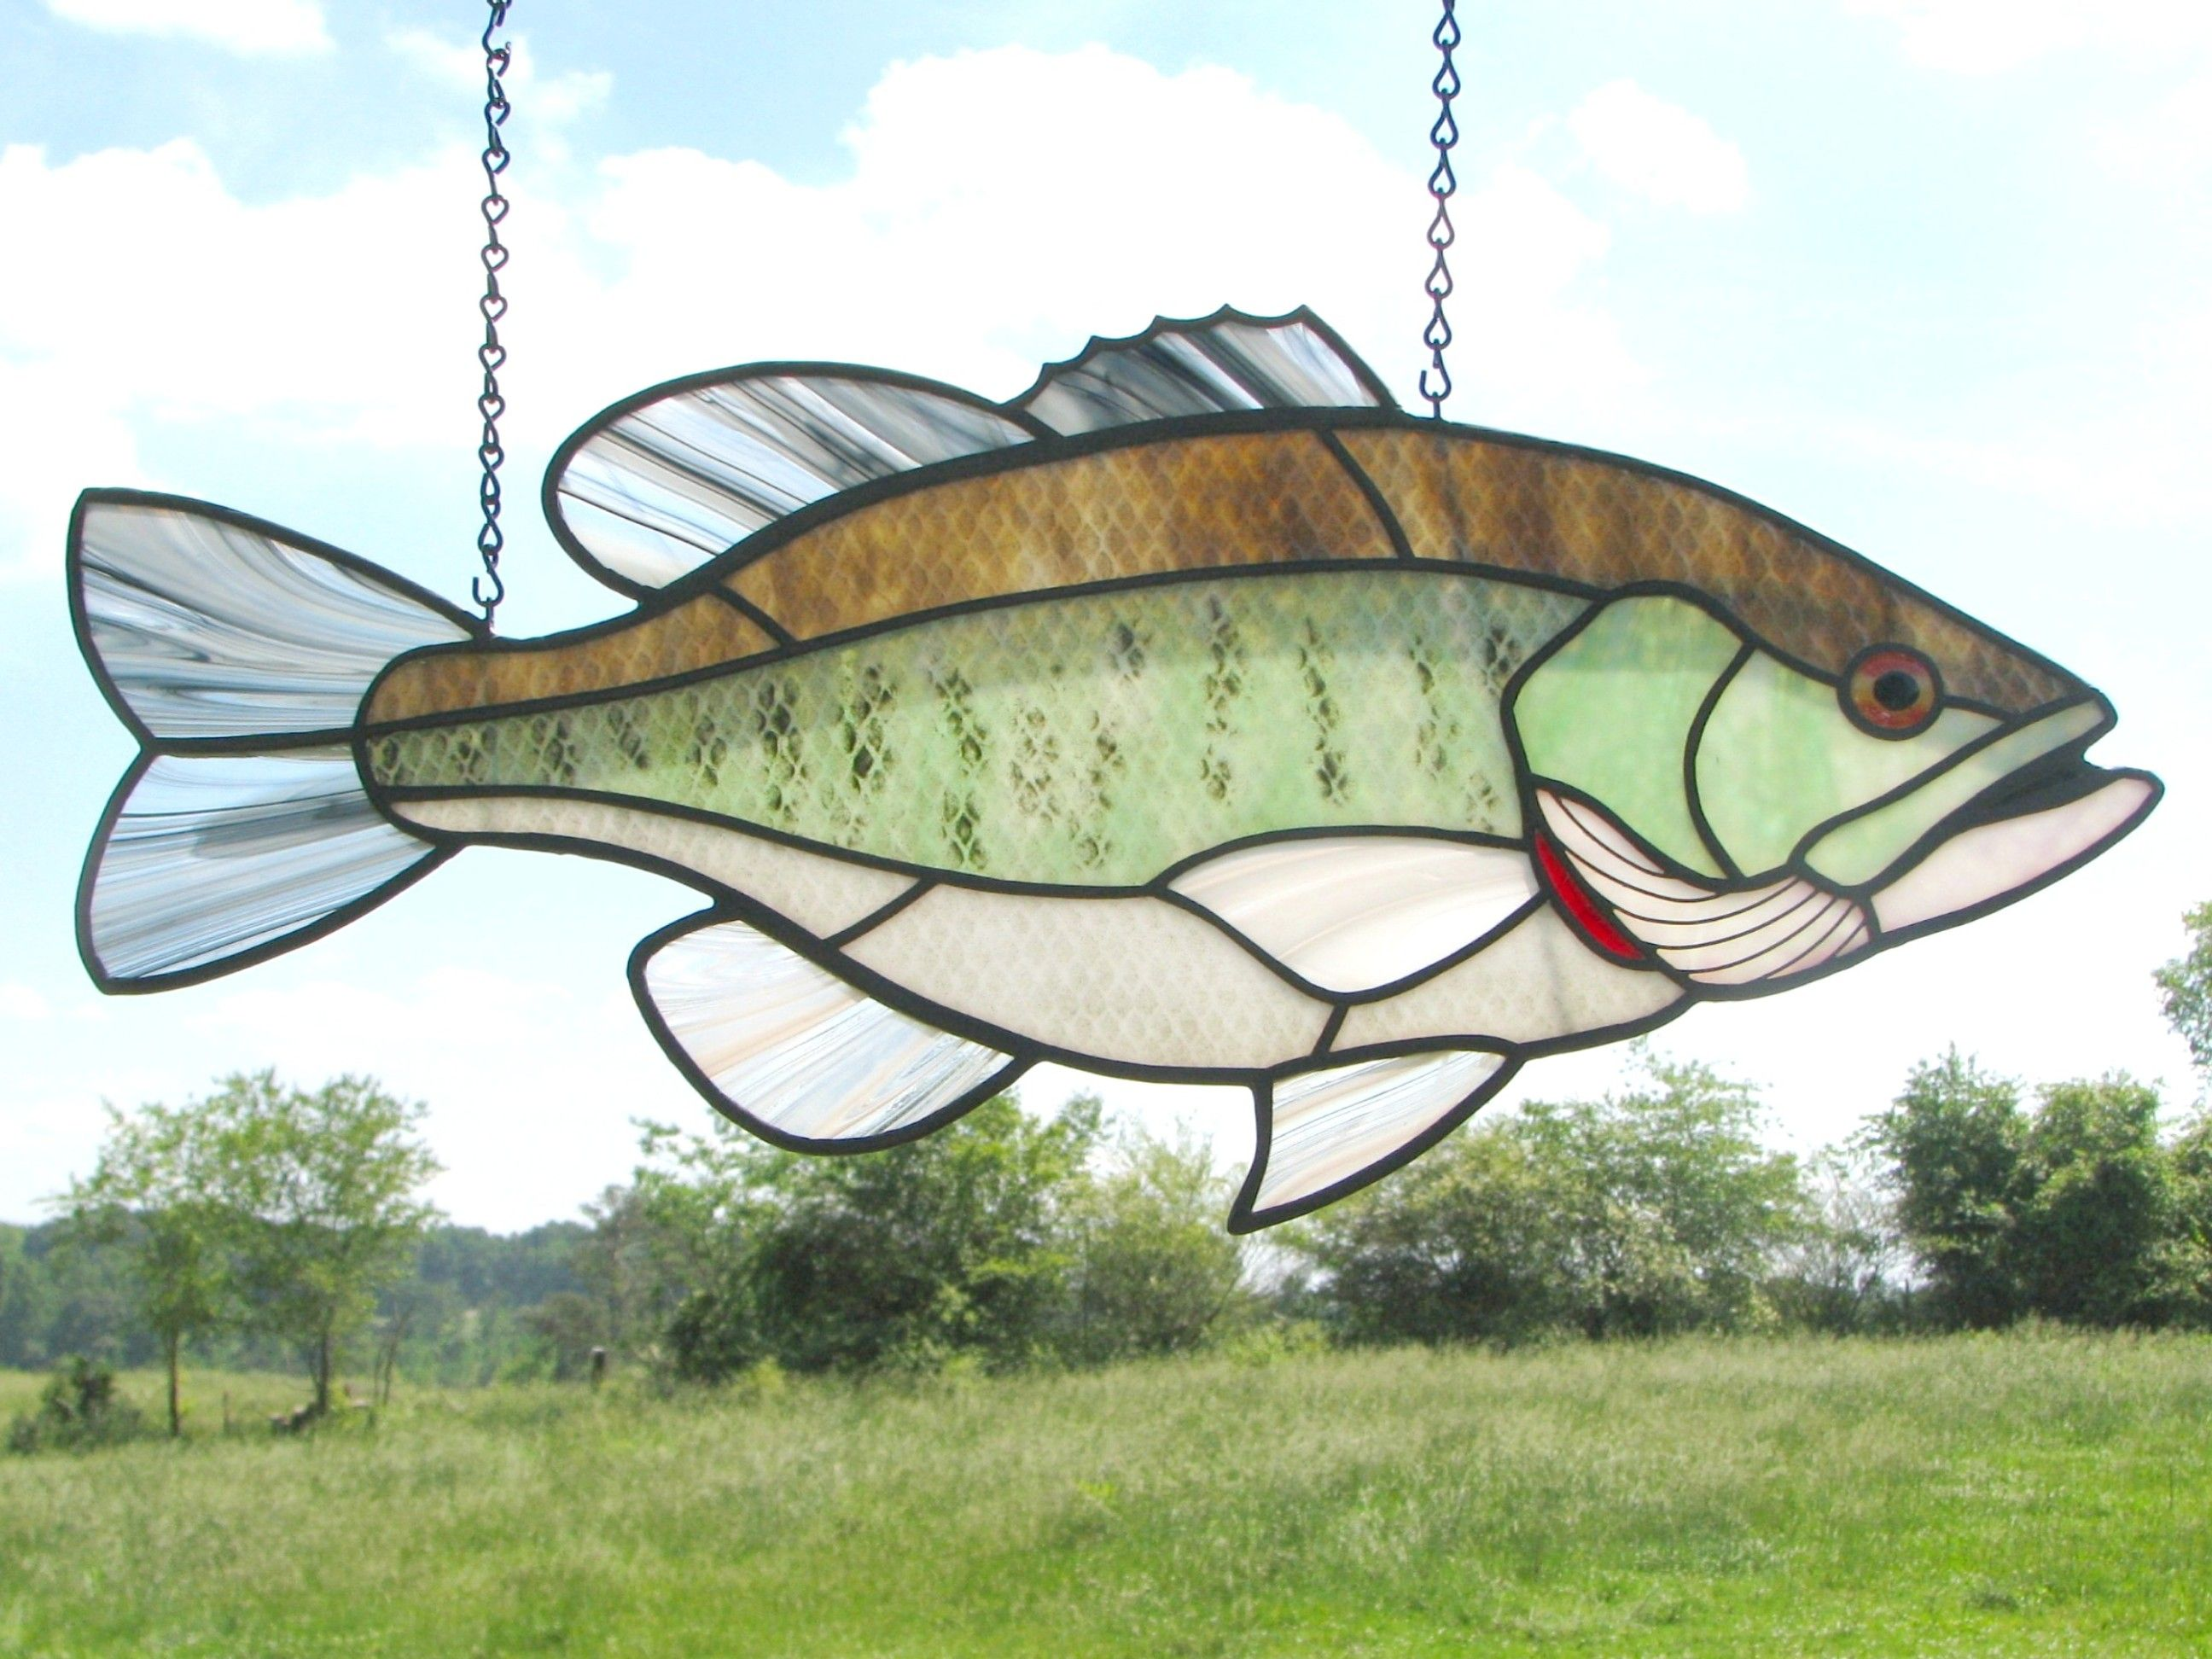 Fresh water fish stained glass art stained glass panels for Stained glass fish